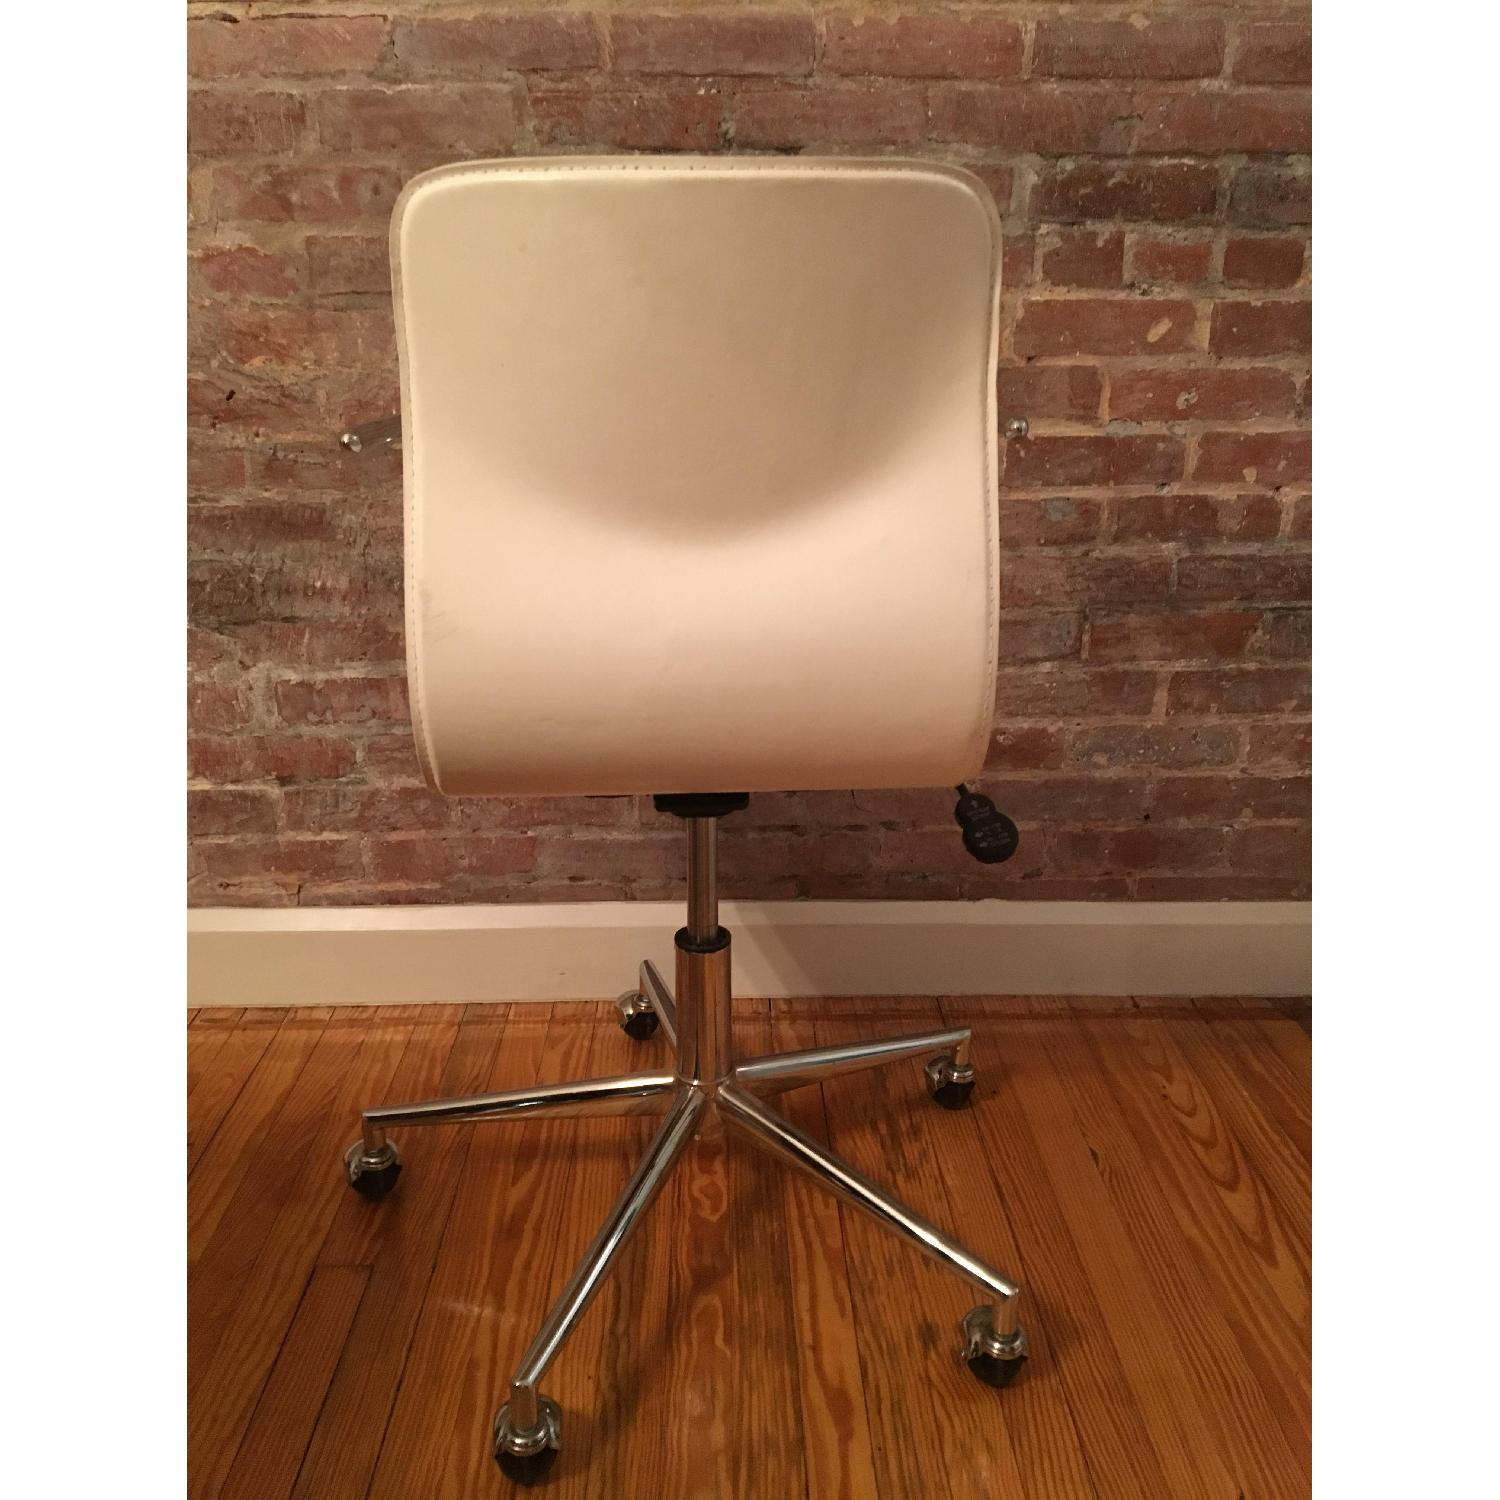 CB2 Form White Office Chair w/ Arm Rest - image-4